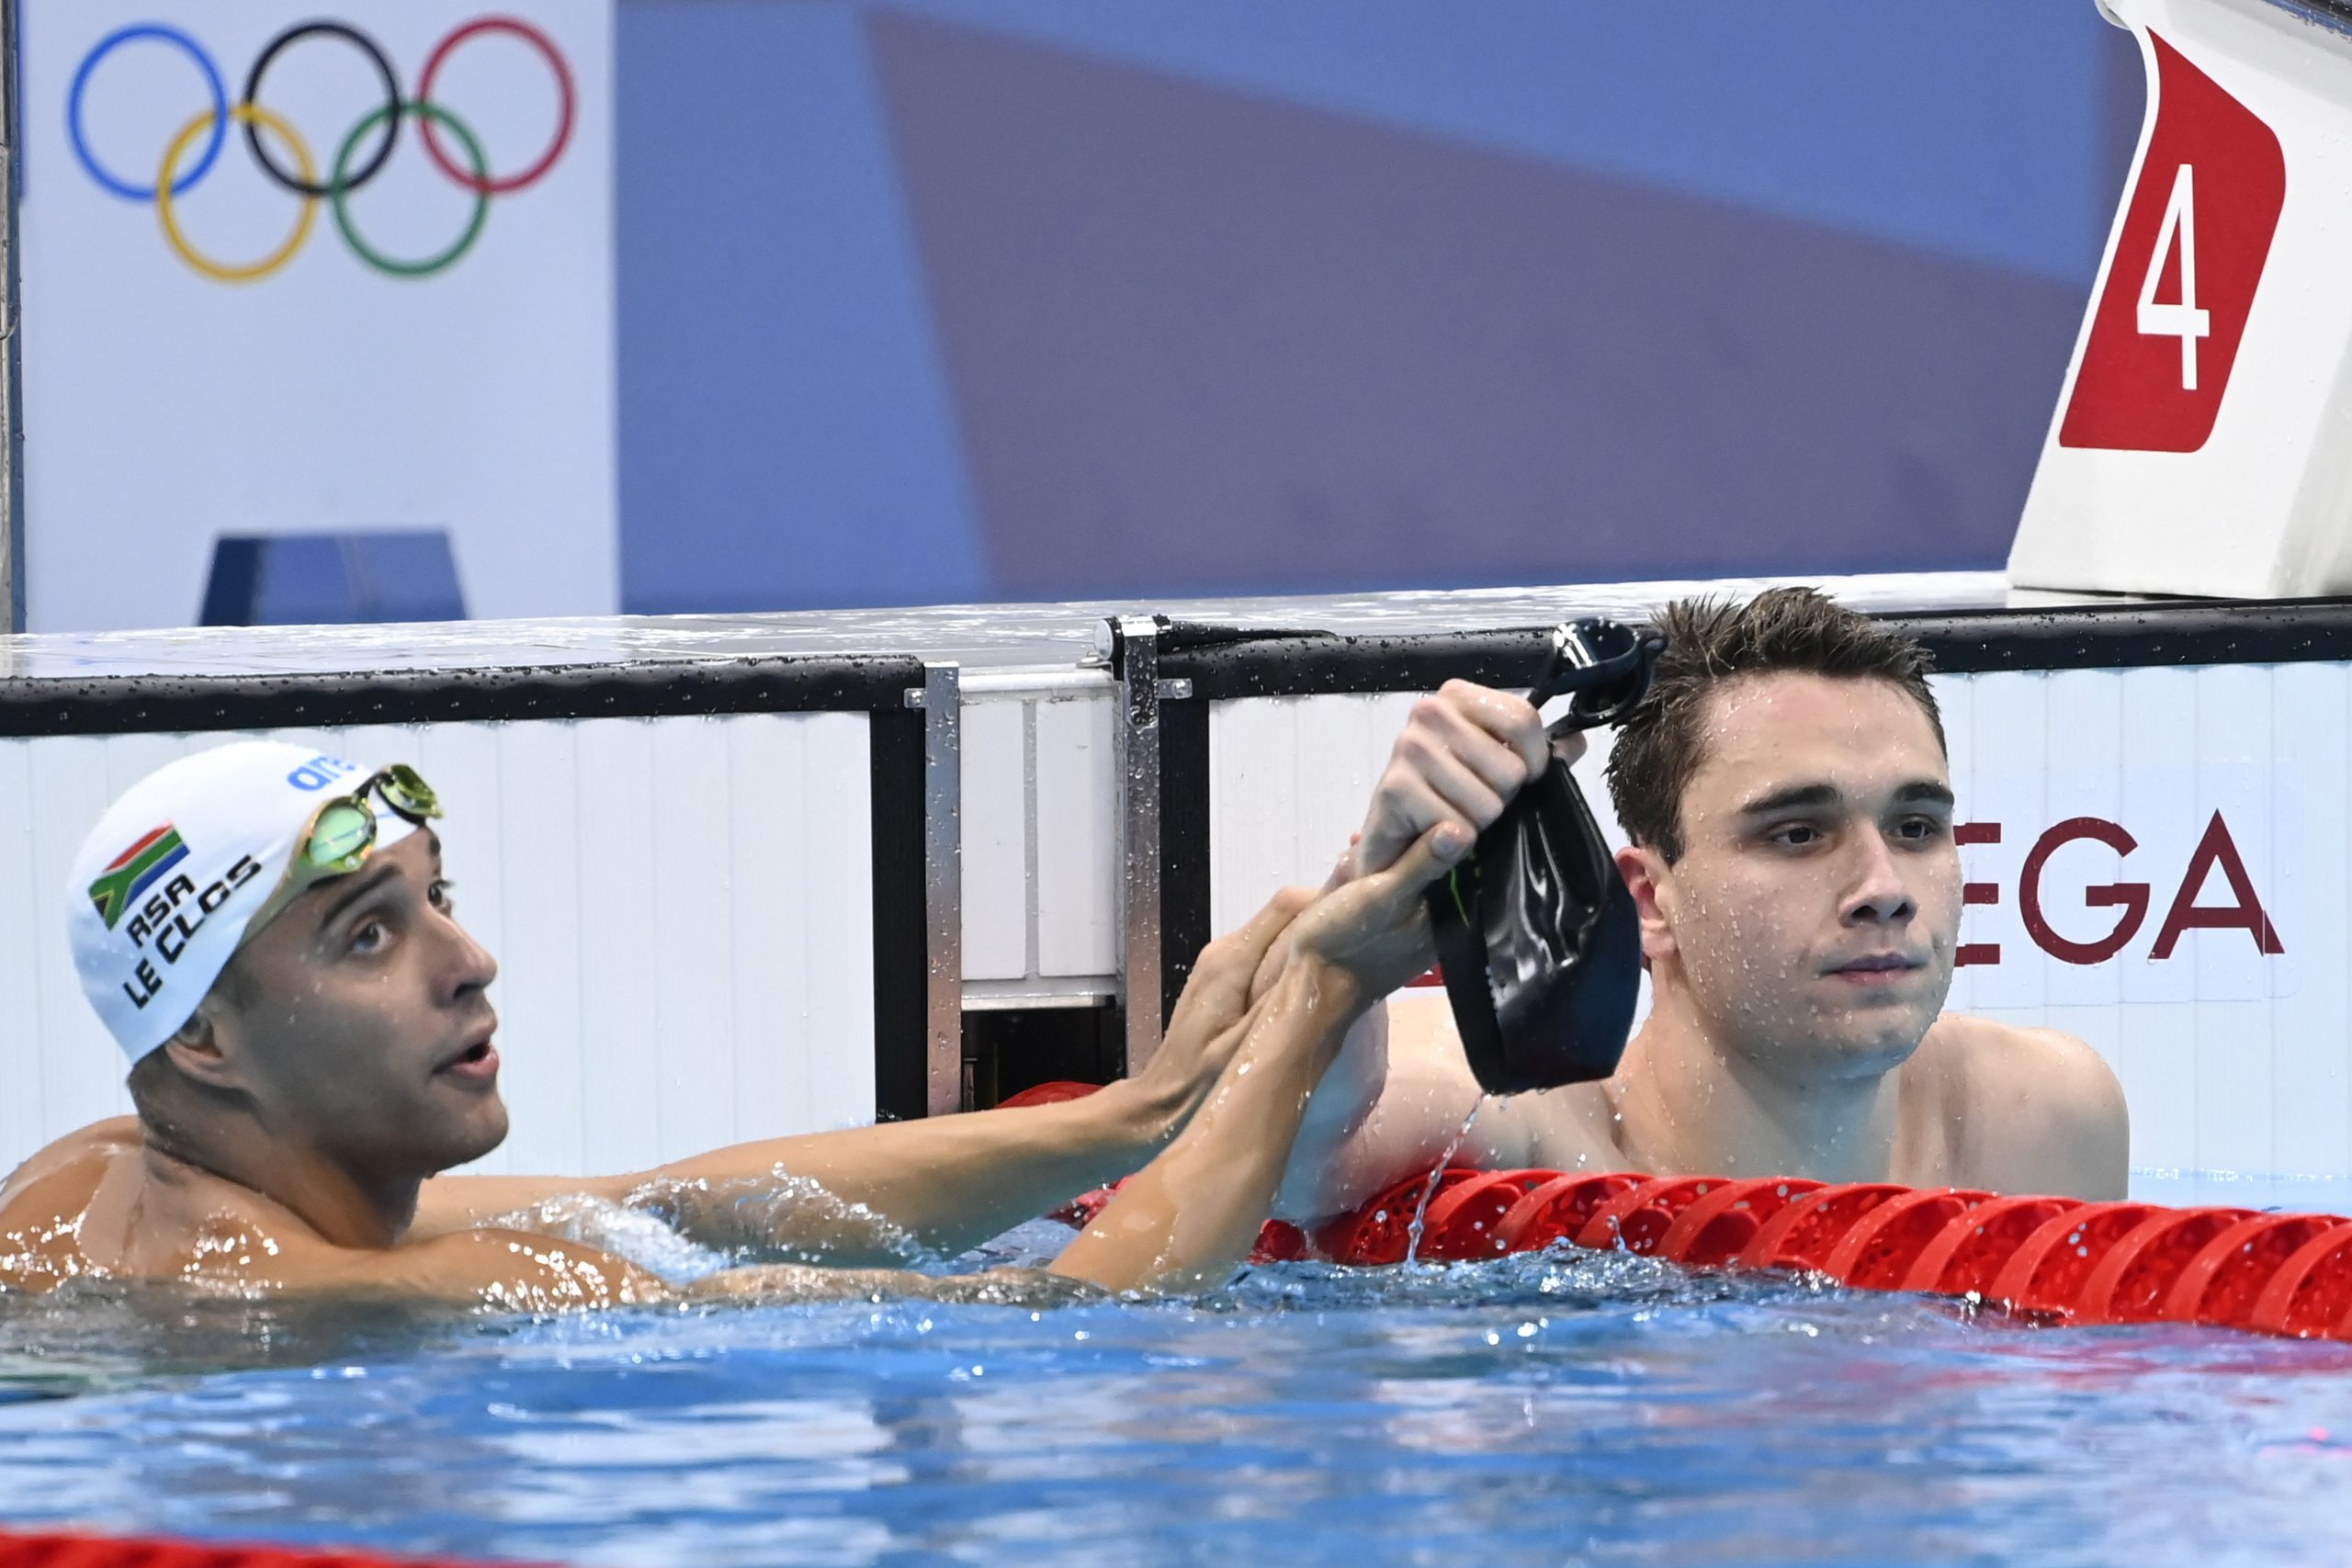 Milák Becomes Meme Star After Lukewarm Reaction to Olympic Gold